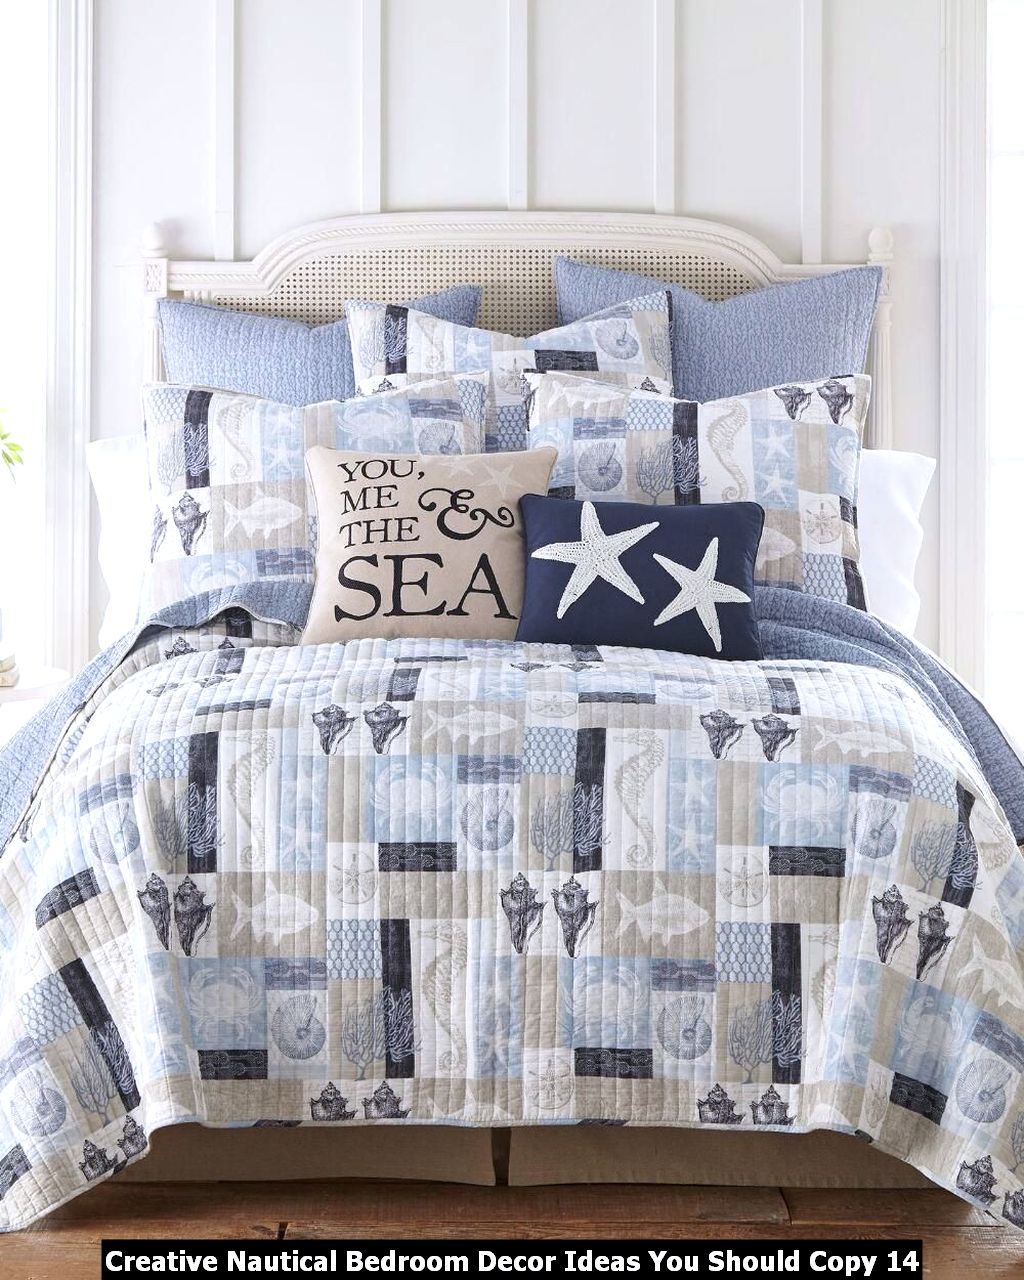 Creative Nautical Bedroom Decor Ideas You Should Copy 14